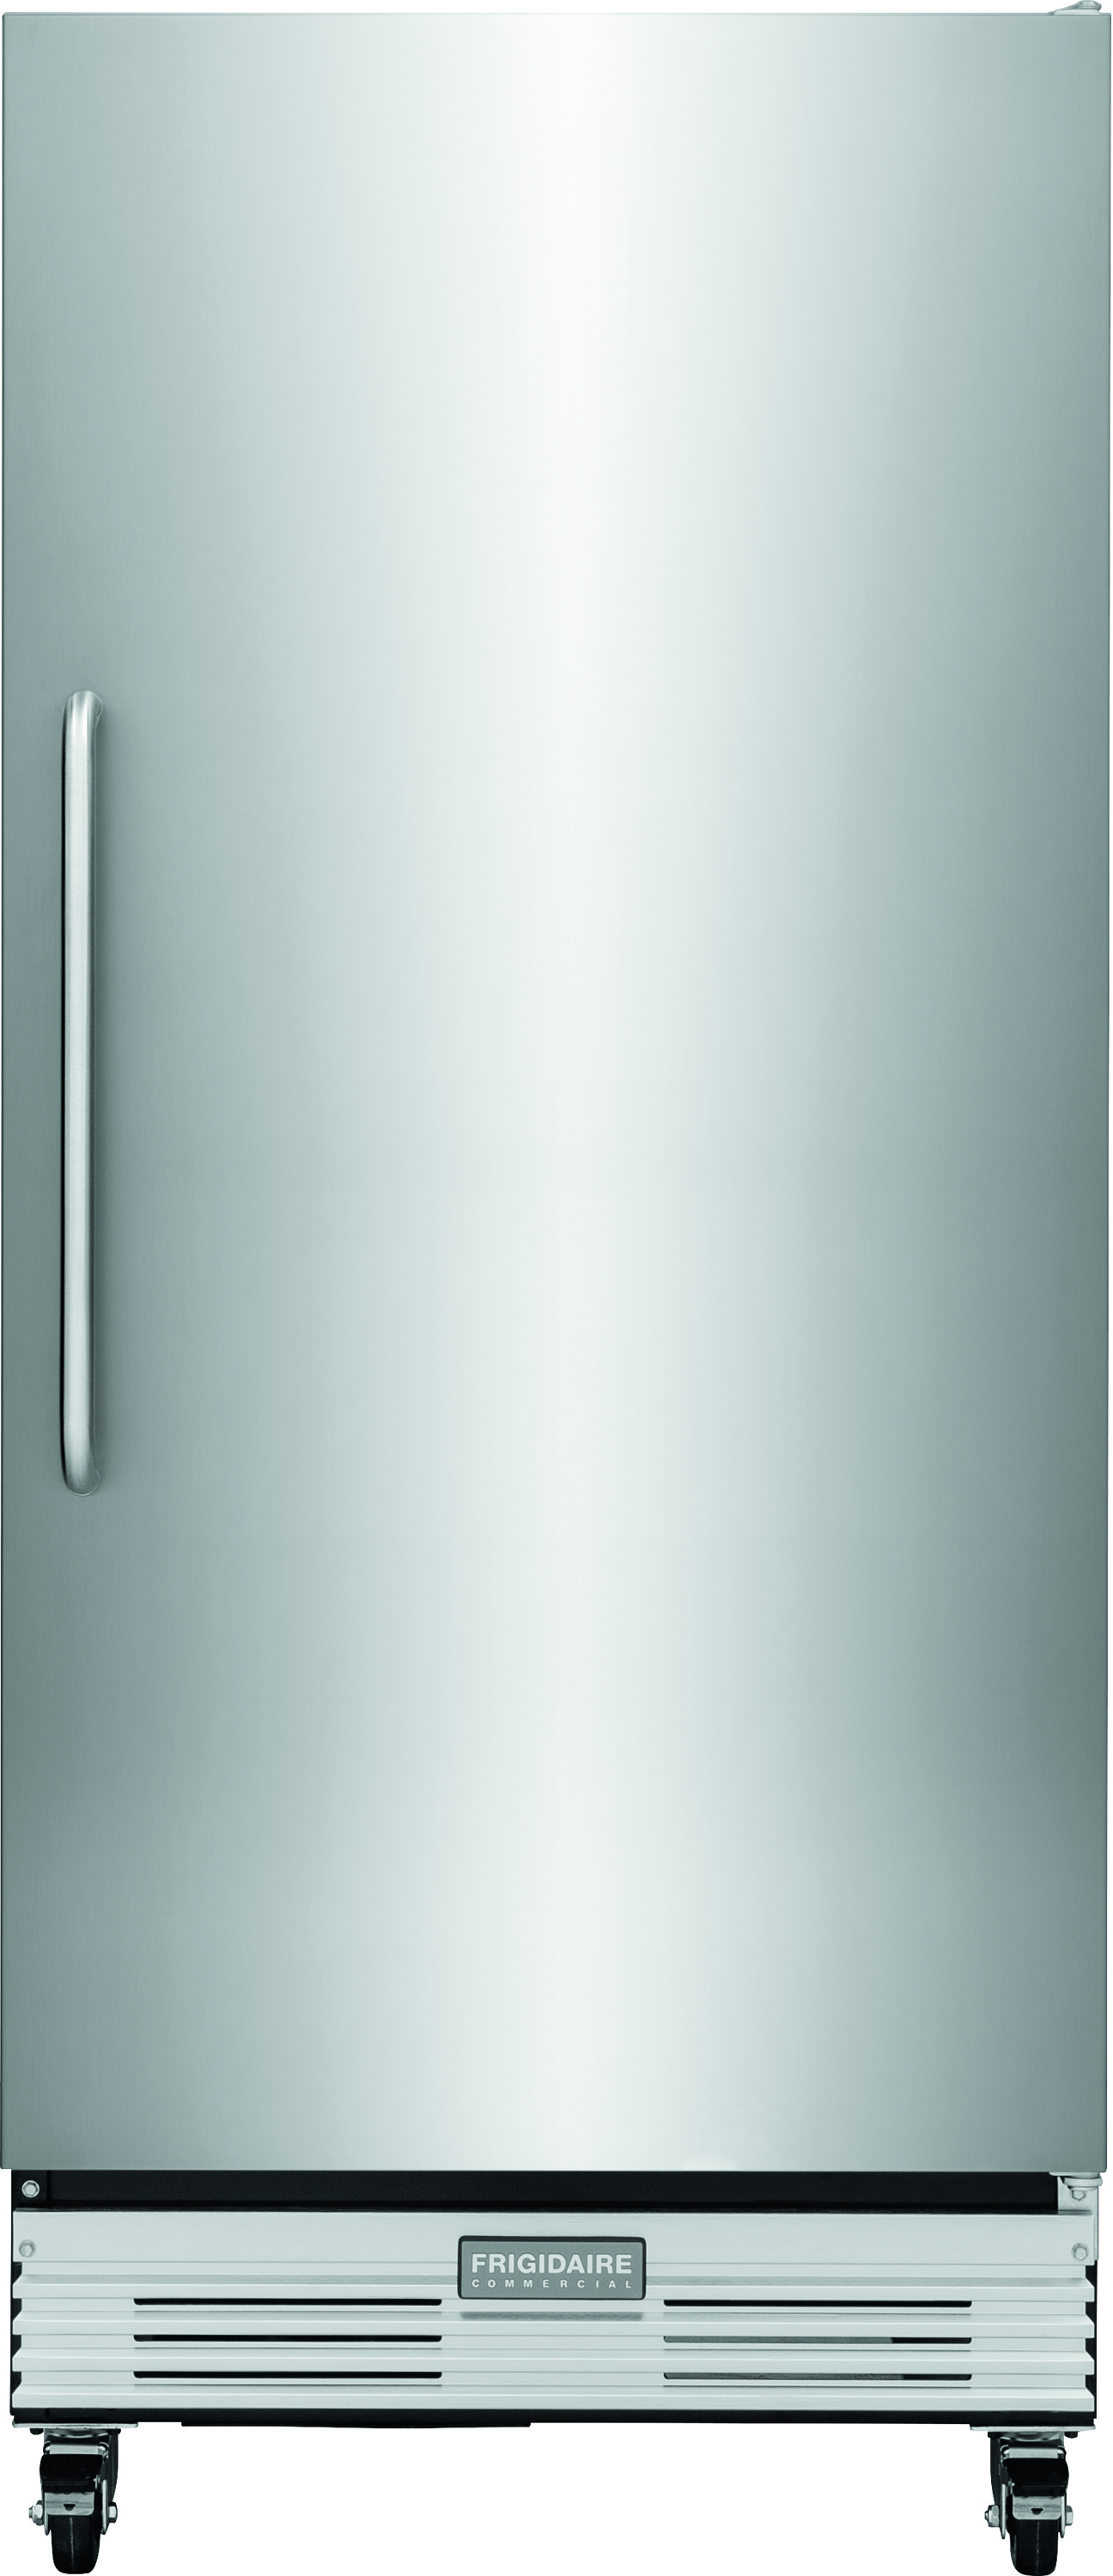 Model: FCRS181RQB | 17.9 Cu. Ft., Food Service Grade, Refrigerator